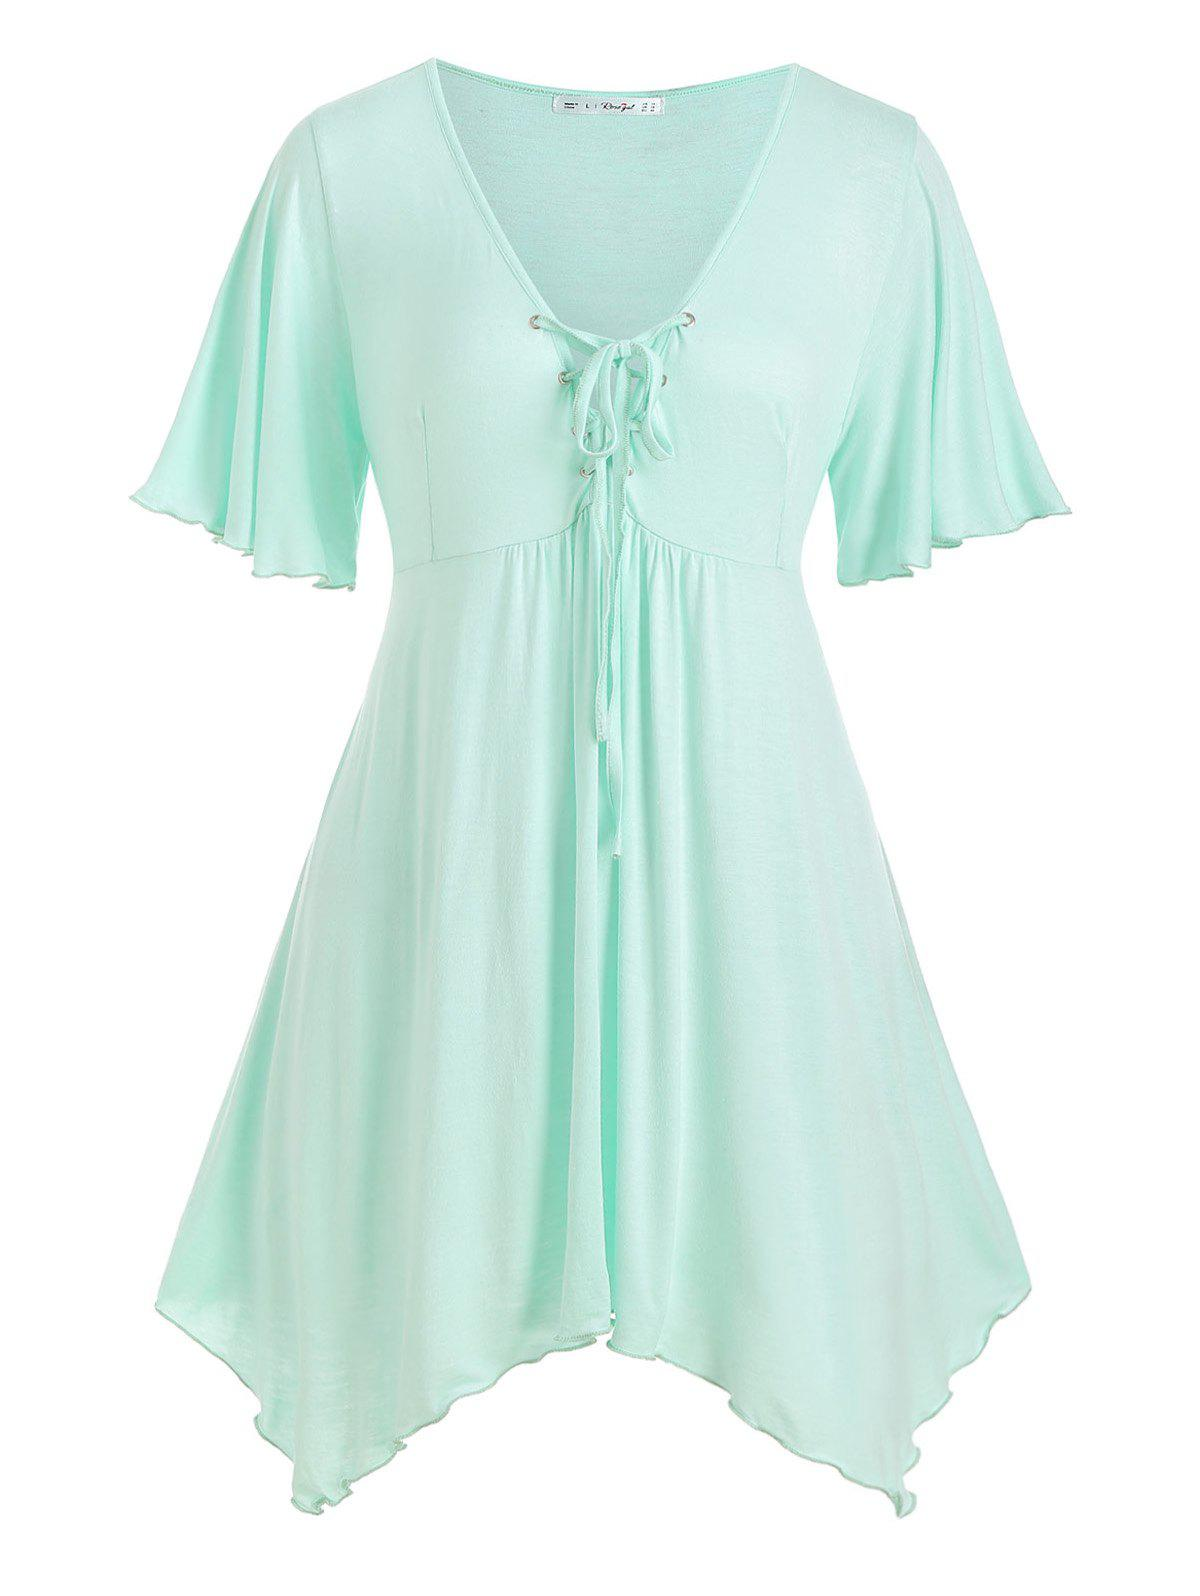 Online Handkerchief Skirted Lace Up Plus Size Top